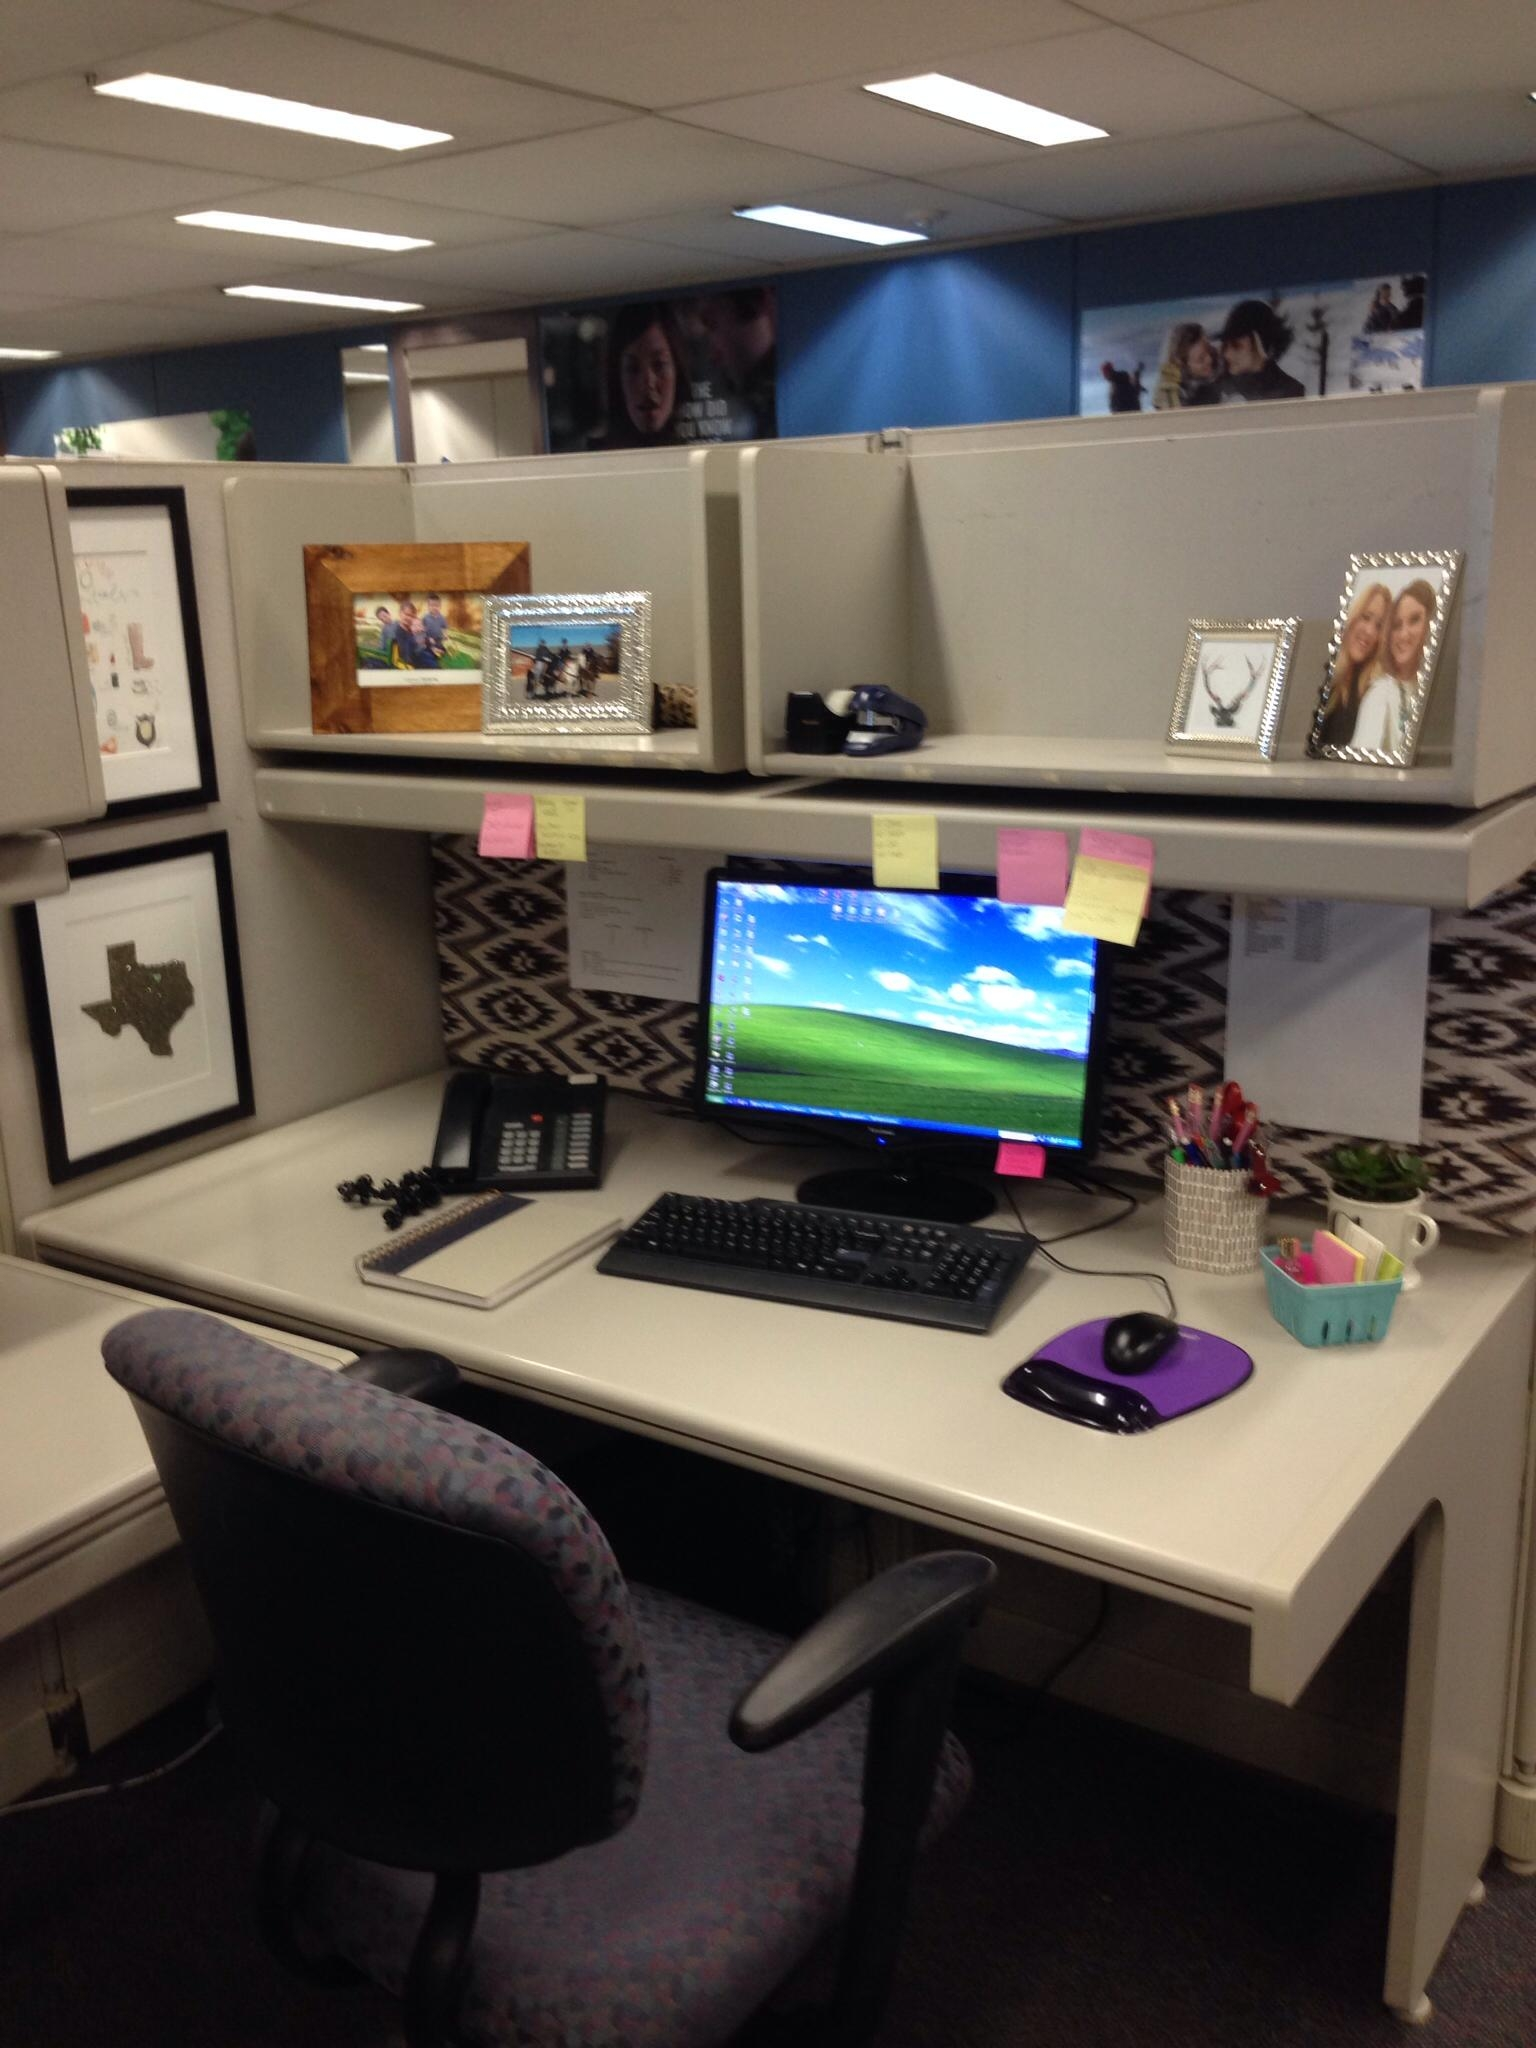 Decor: Black Leather Office Chair Design Ideas With Cubicle Throughout Cubicle Wall Art (View 14 of 20)